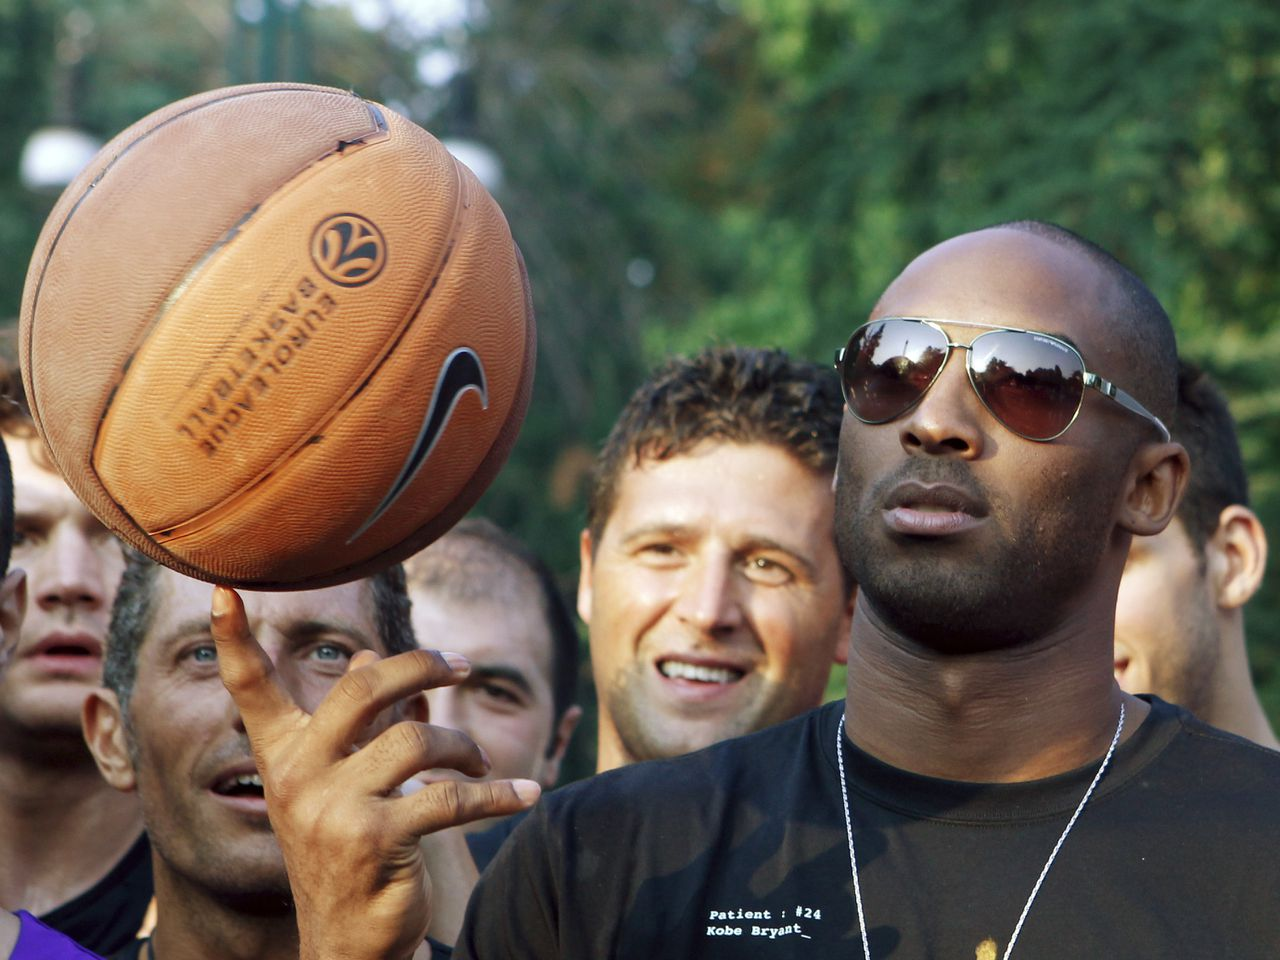 """U.S. basketball star Kobe Bryant plays with a ball during a sponsor's appearance in Milan, Italy, Wednesday, Sept. 28, 2011. Bryant said it's """"very possible"""" he will play in Italy during the NBA lockout, adding the country is like home because he spent part of his childhood there. (AP Photo/Luca Bruno)"""